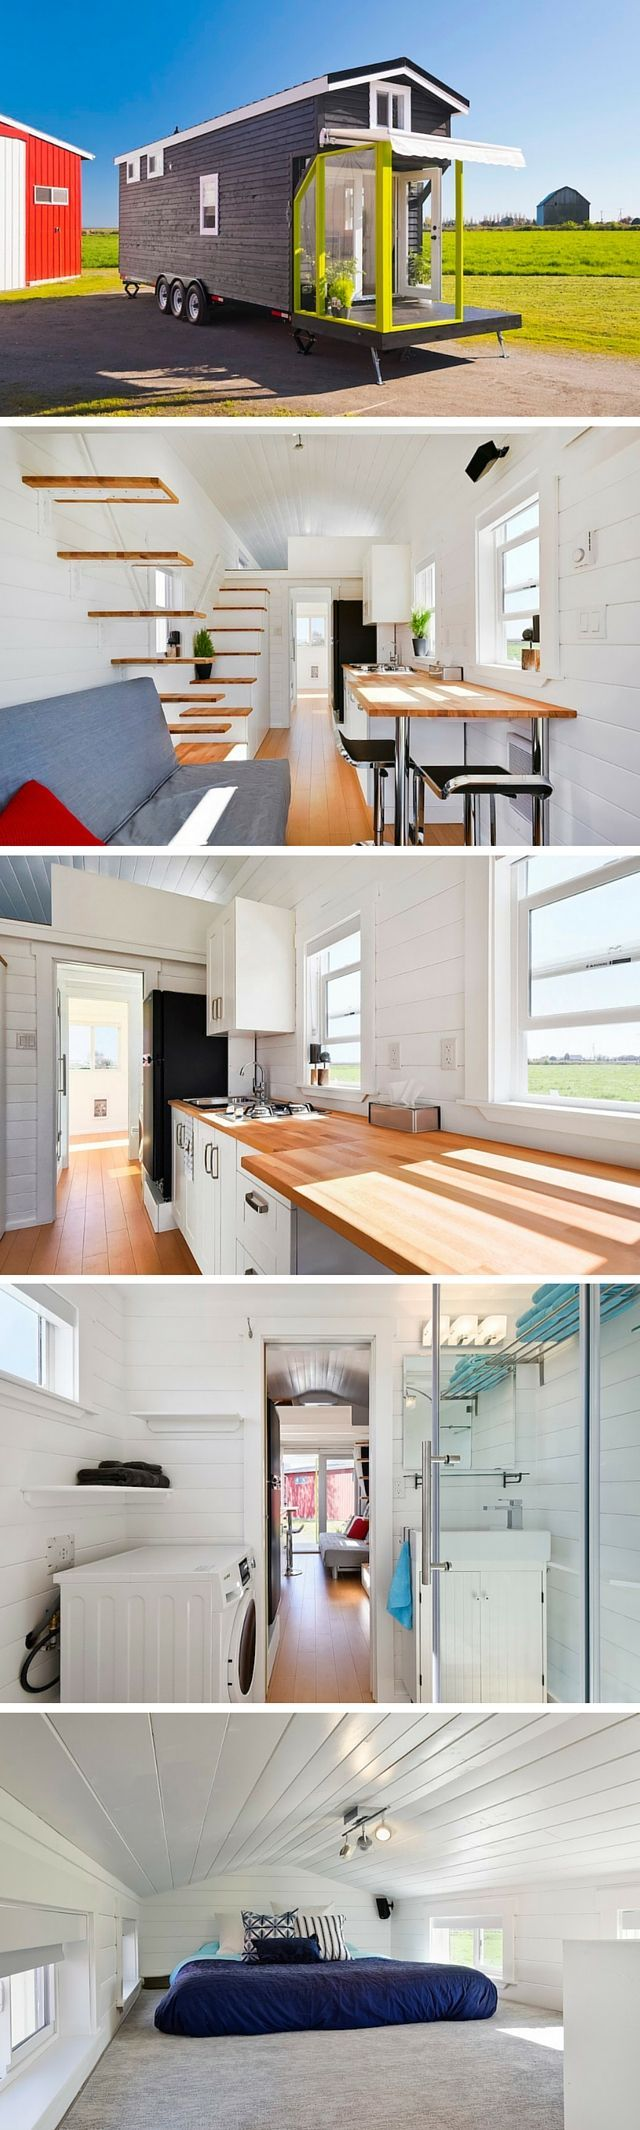 awesome How To Build Your Own Shipping Container Home - FREECYCLE by http://www.danaz-home-decor-ideas.xyz/tiny-homes/how-to-build-your-own-shipping-container-home-freecycle-3/